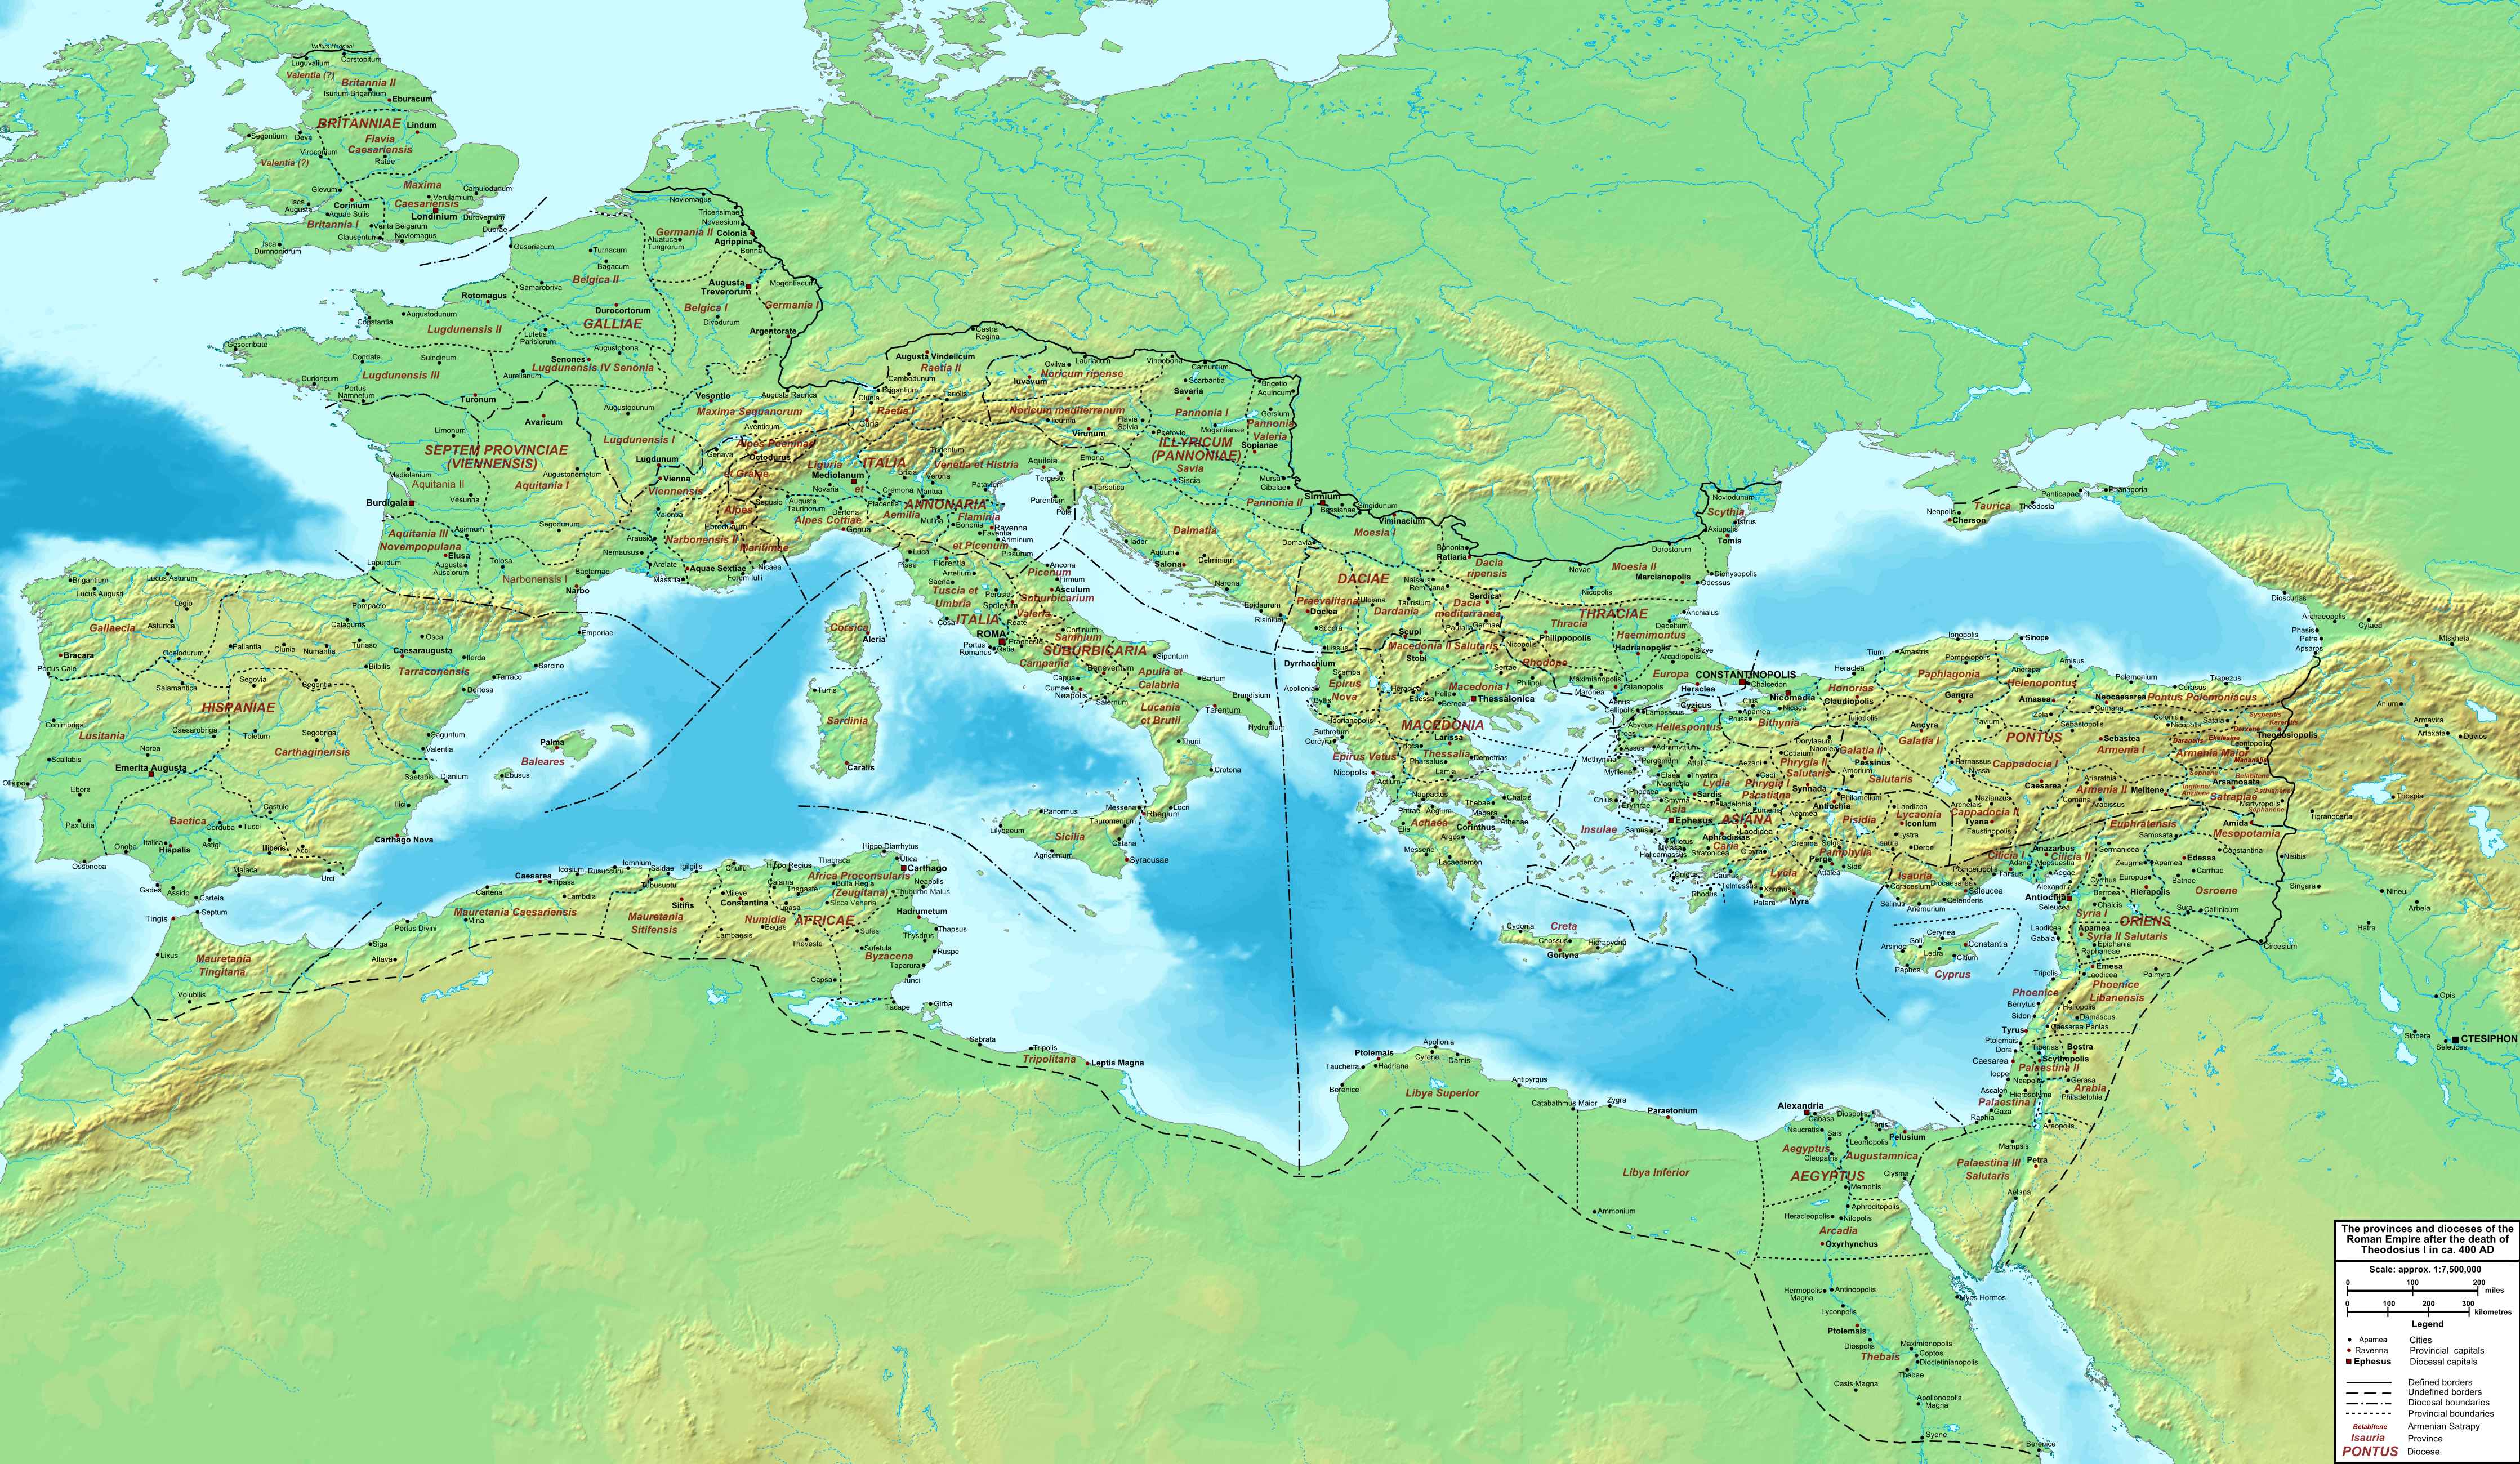 The Roman Empire ca. 400 AD